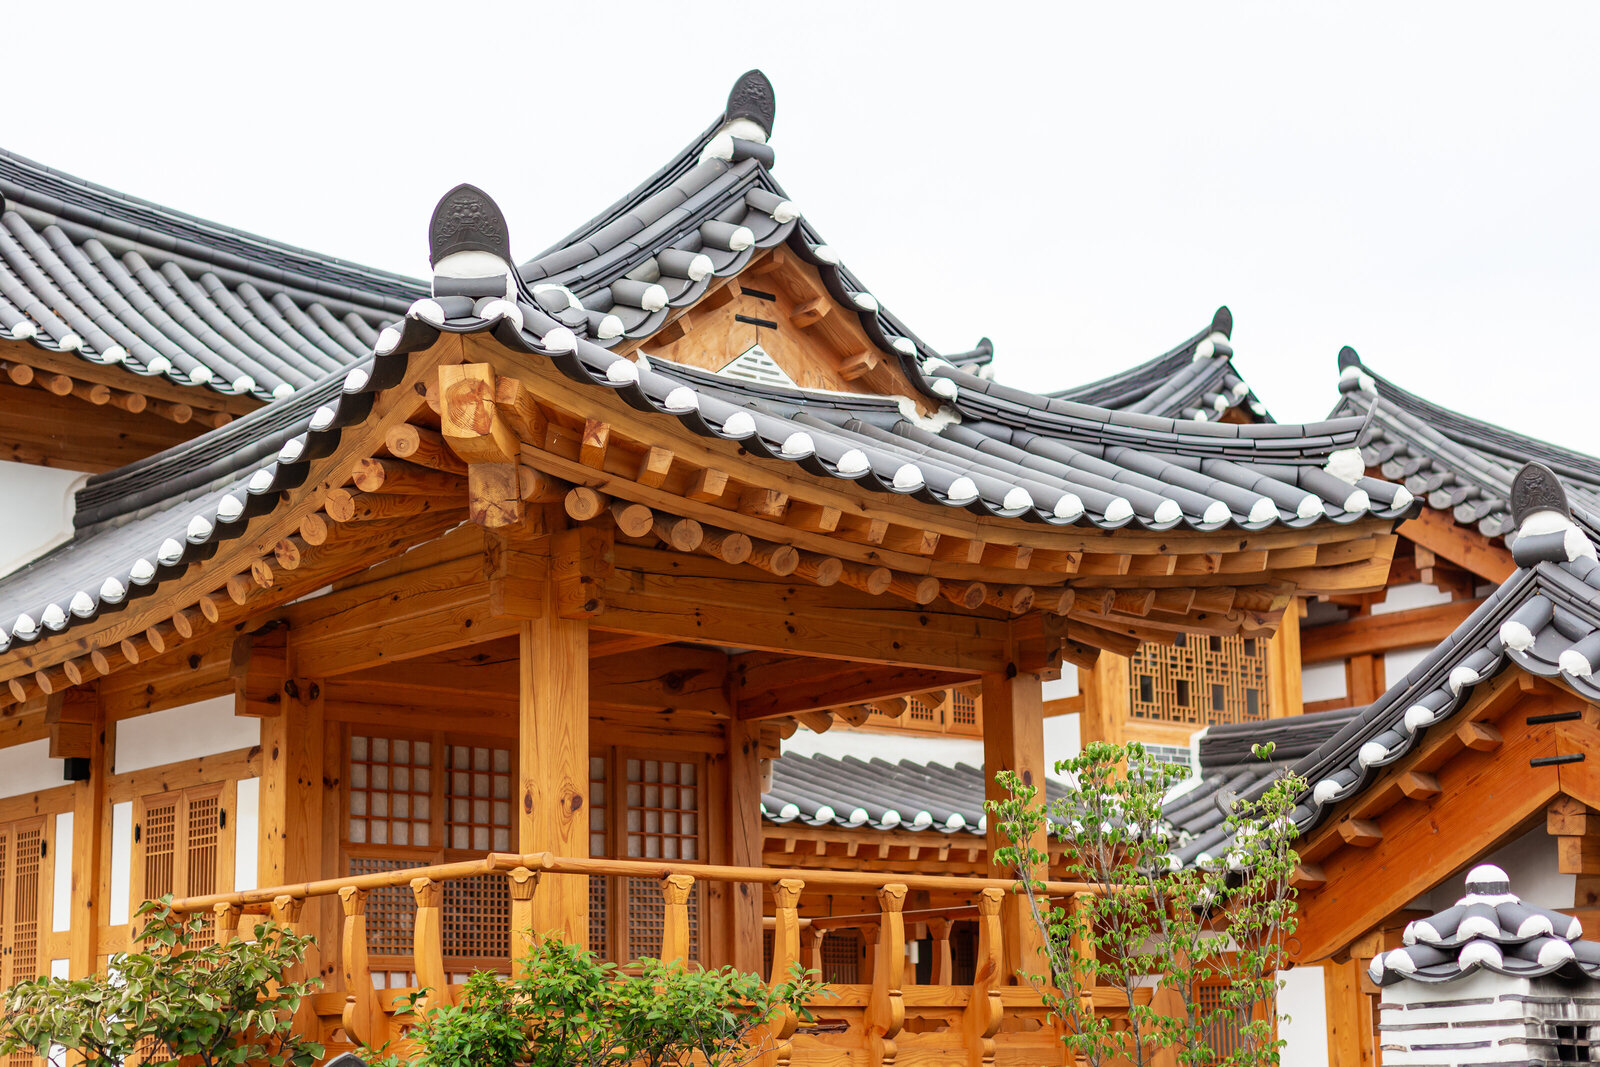 056-KBP-South-korea-Seoul-Eunpyeong-Hanok-Village-5